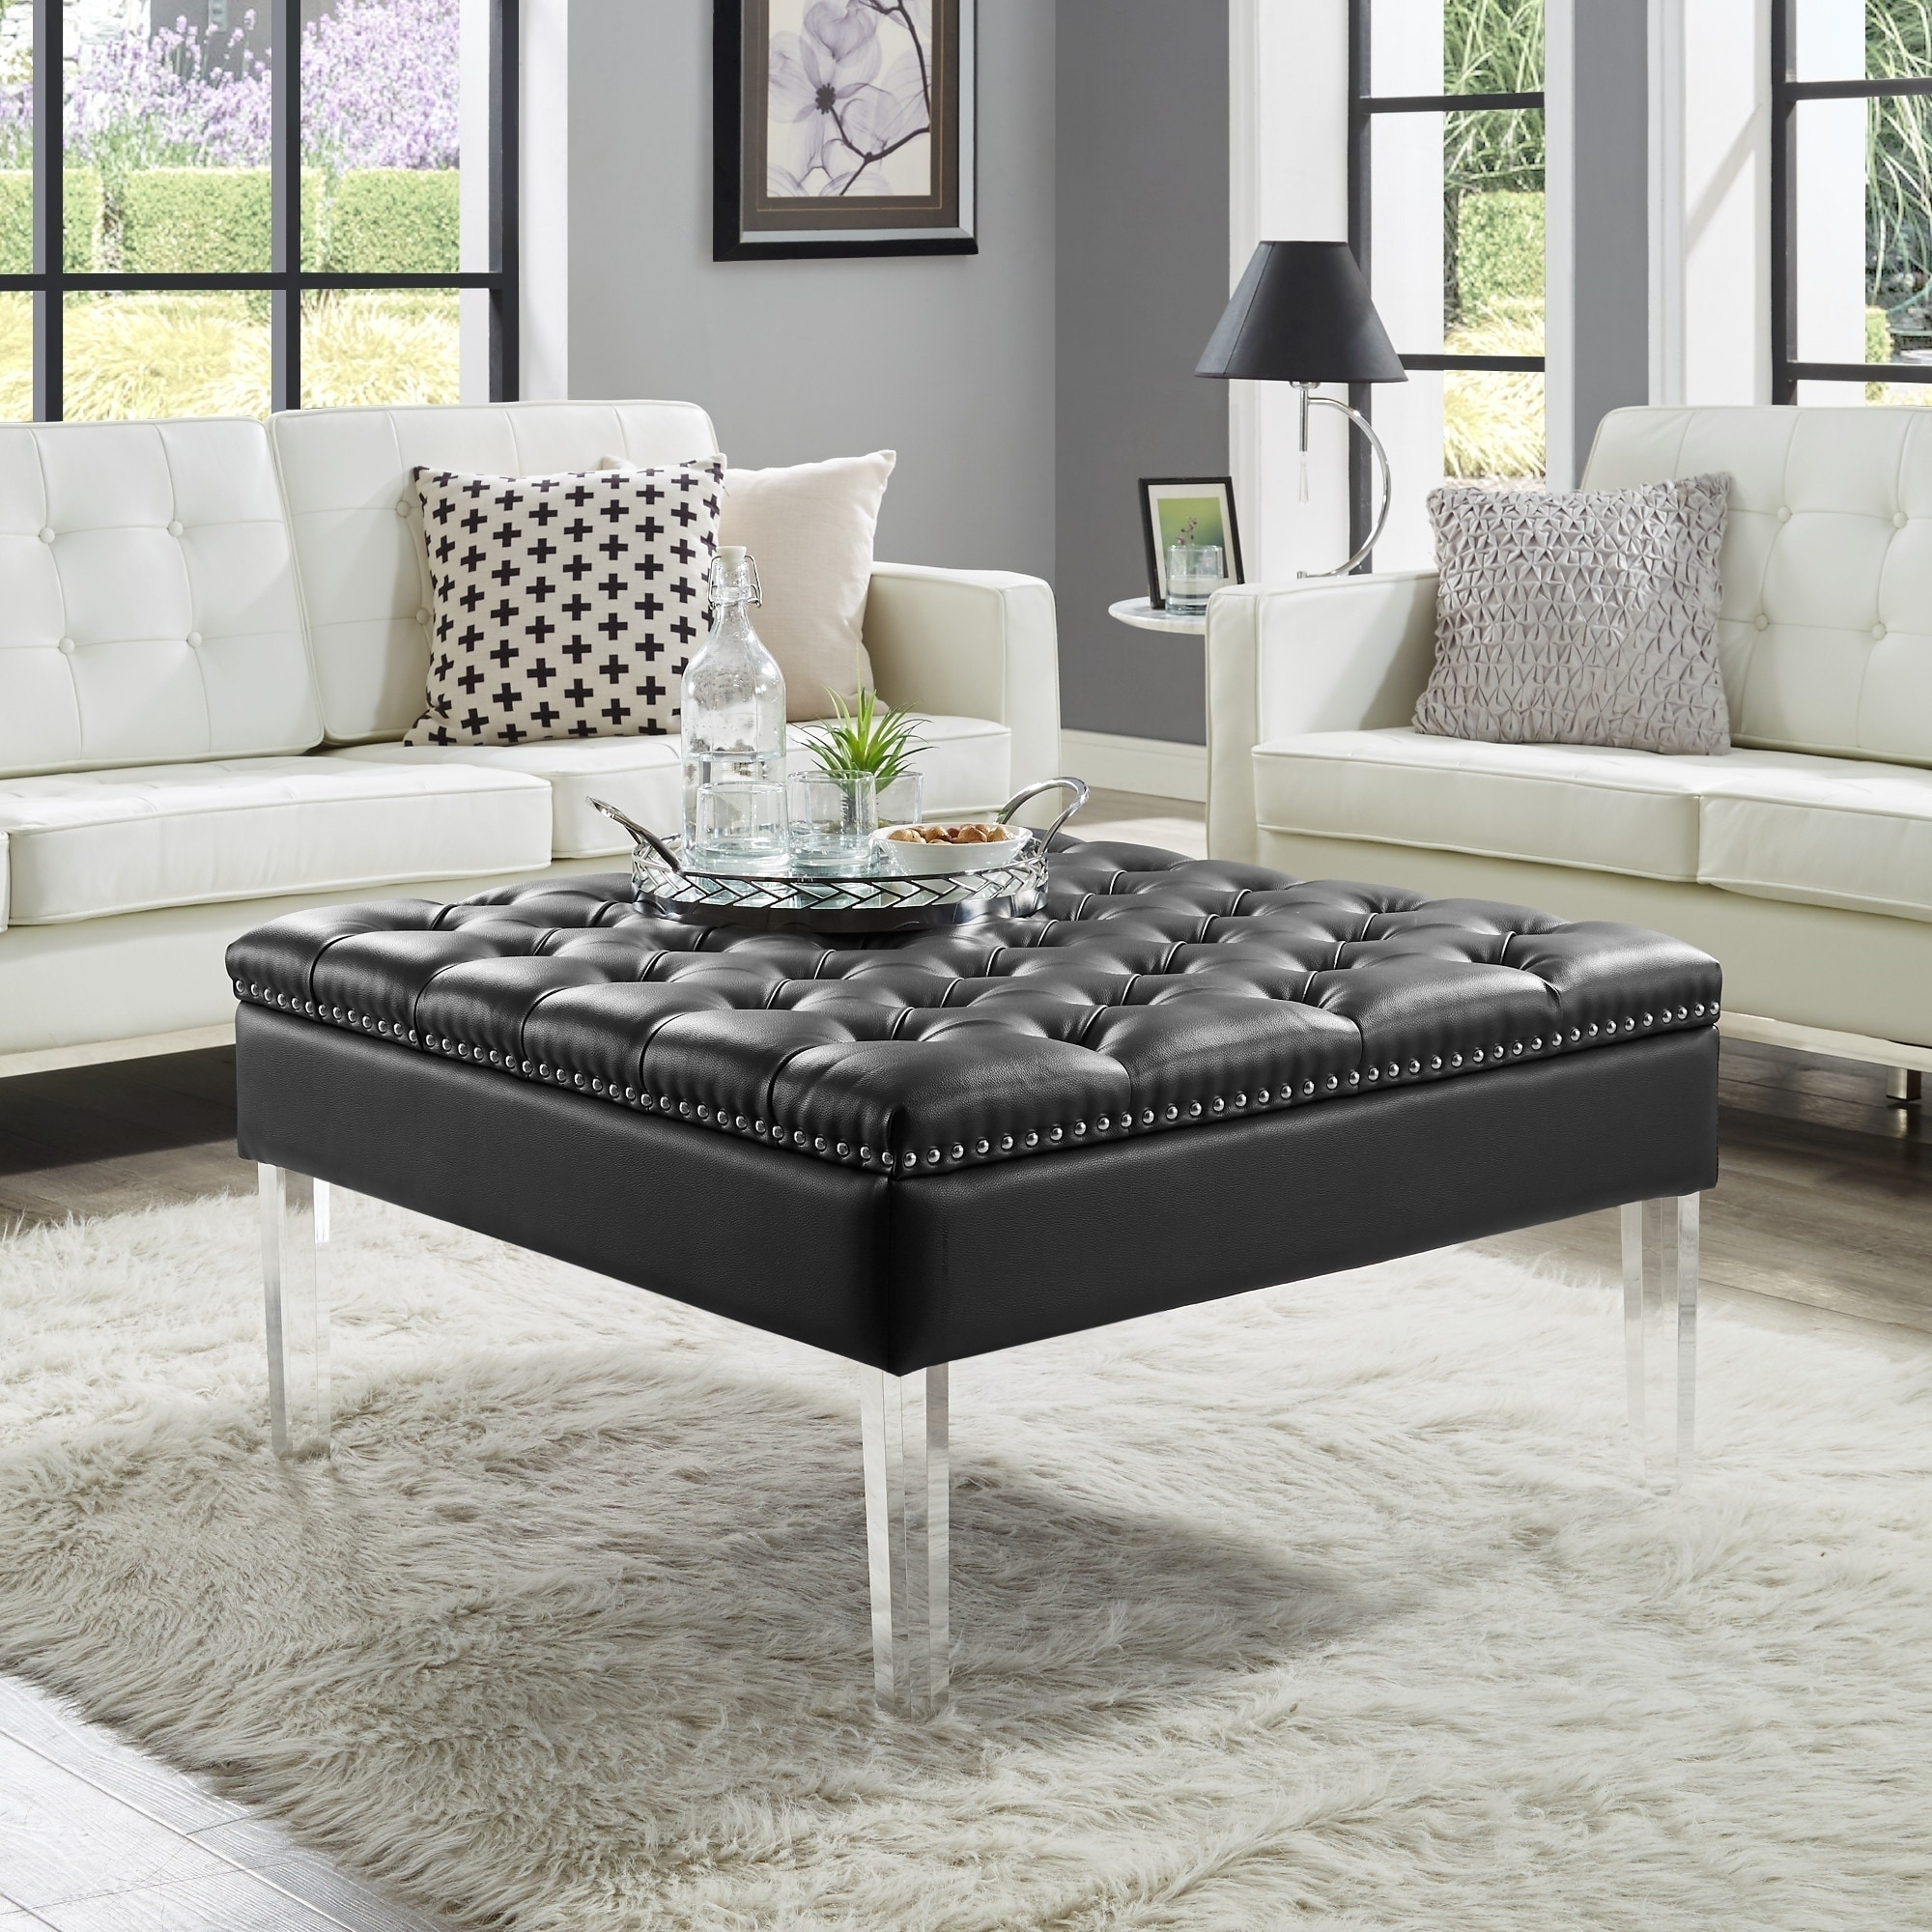 - Shop Vivian Leather Oversized Button-tufted Ottoman Coffee Table